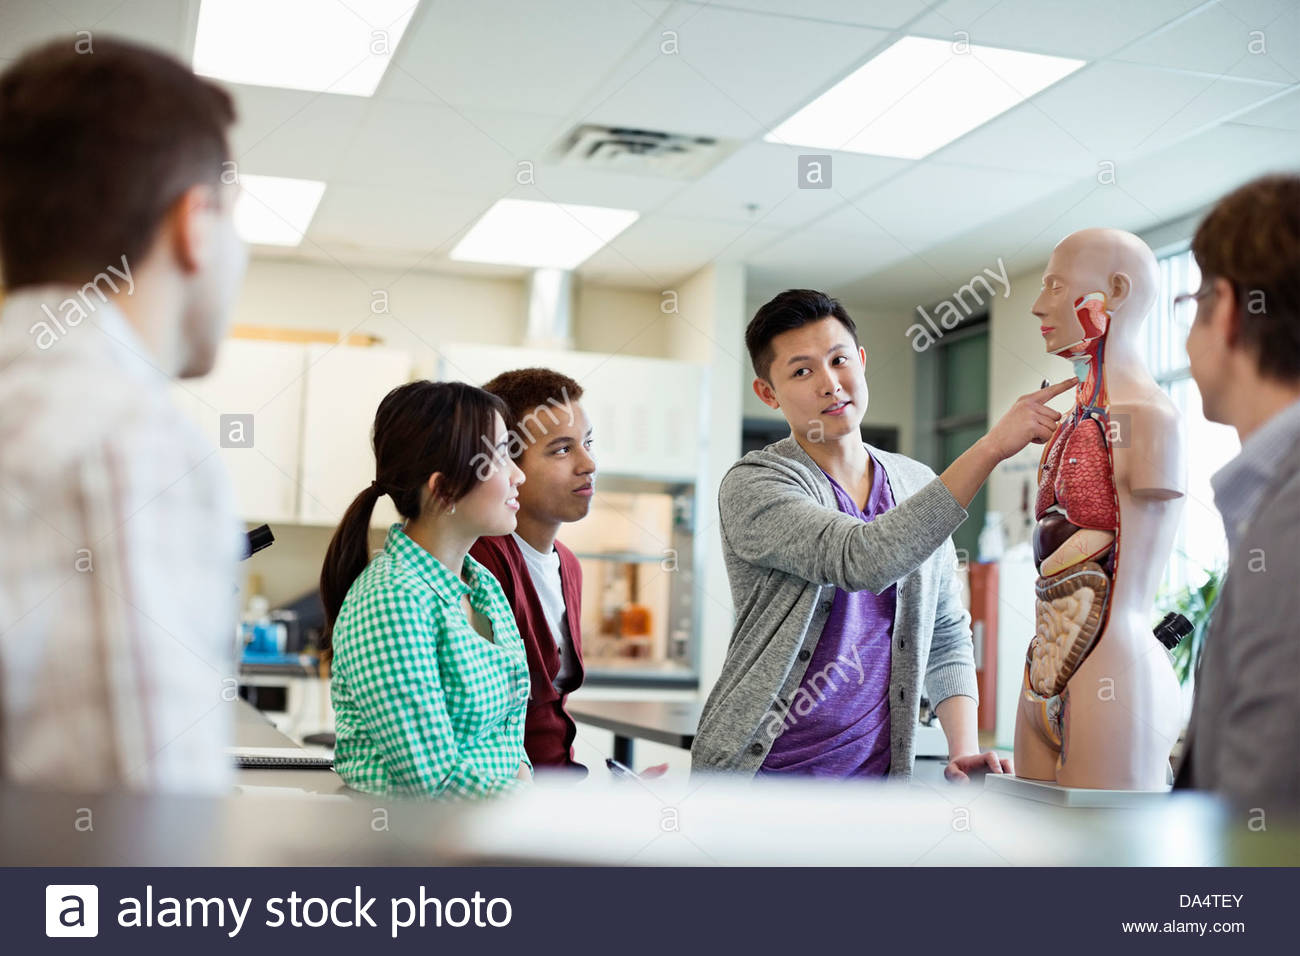 Students learning anatomy in college science lab - Stock Image